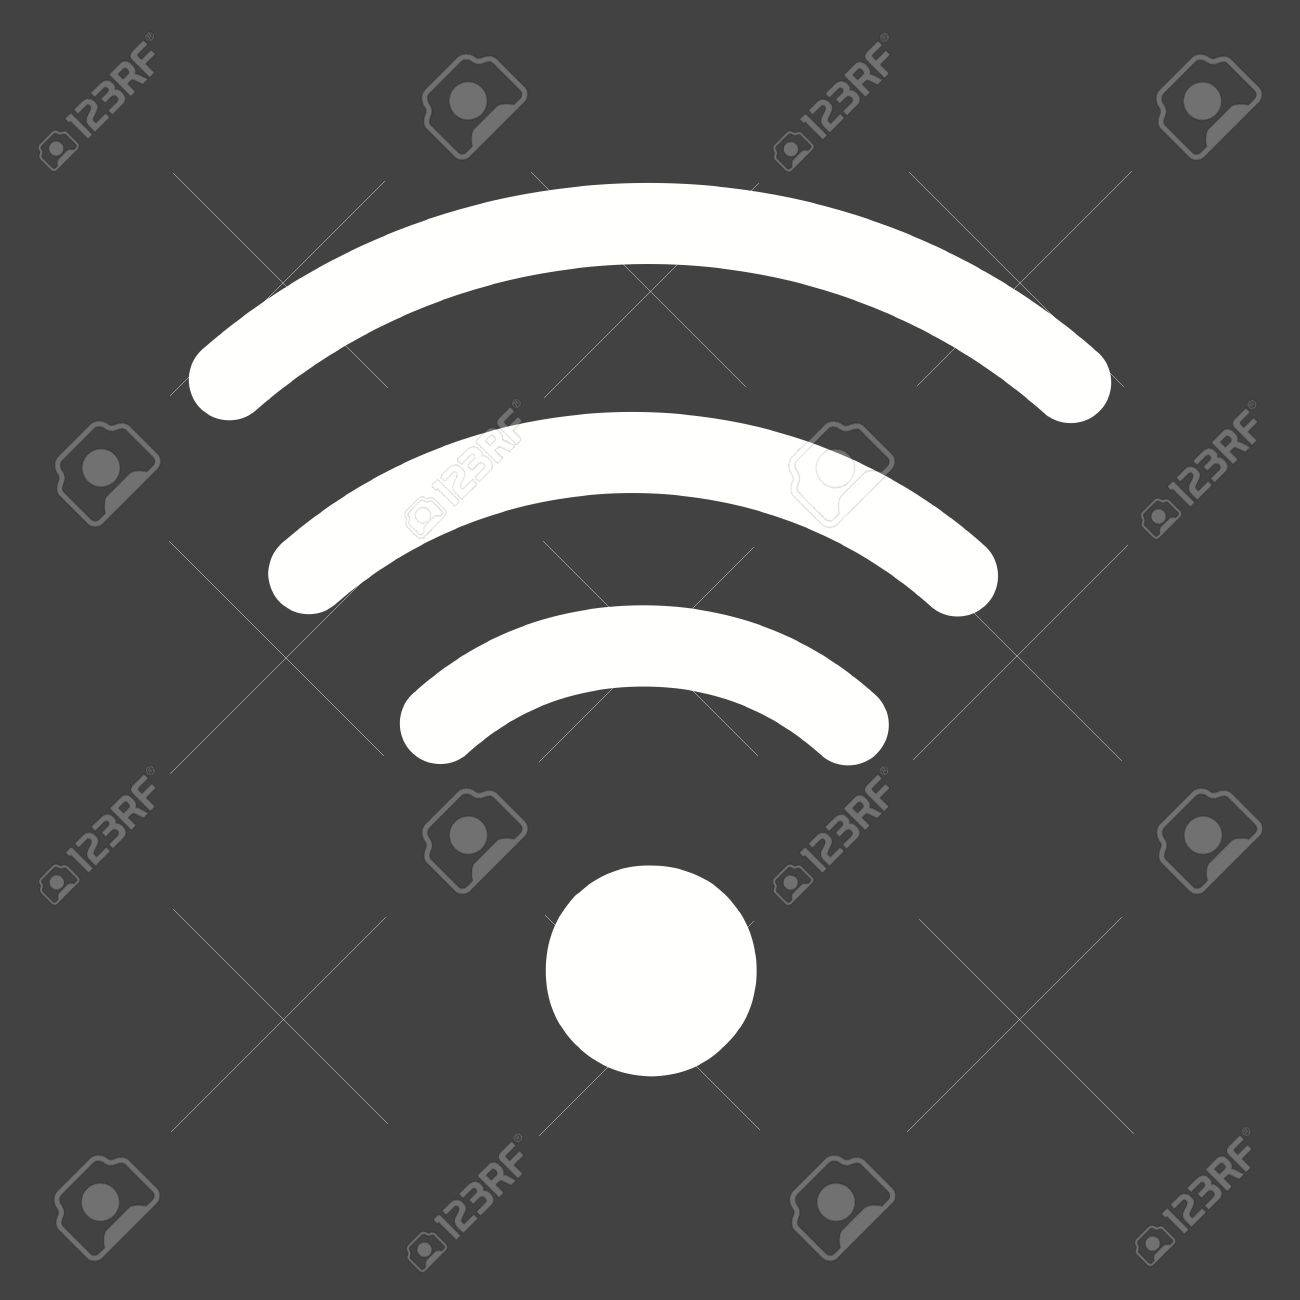 Wifi, signals, connection icon vector image  Can also be used